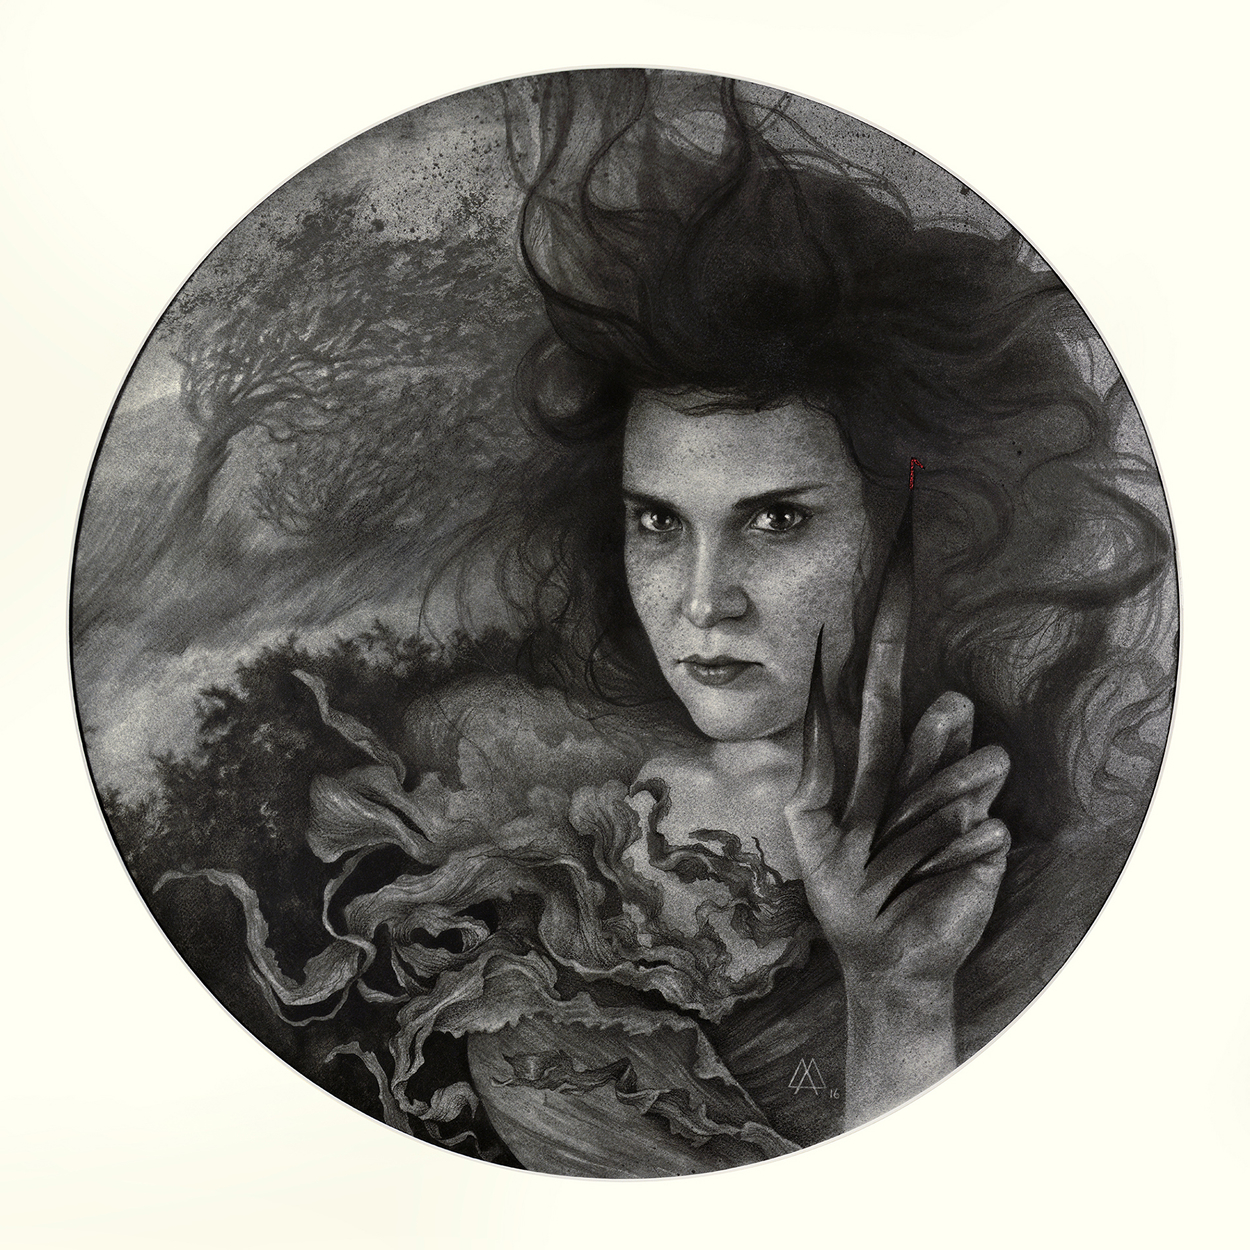 The Wicked Circle Artwork by Adeline Martin